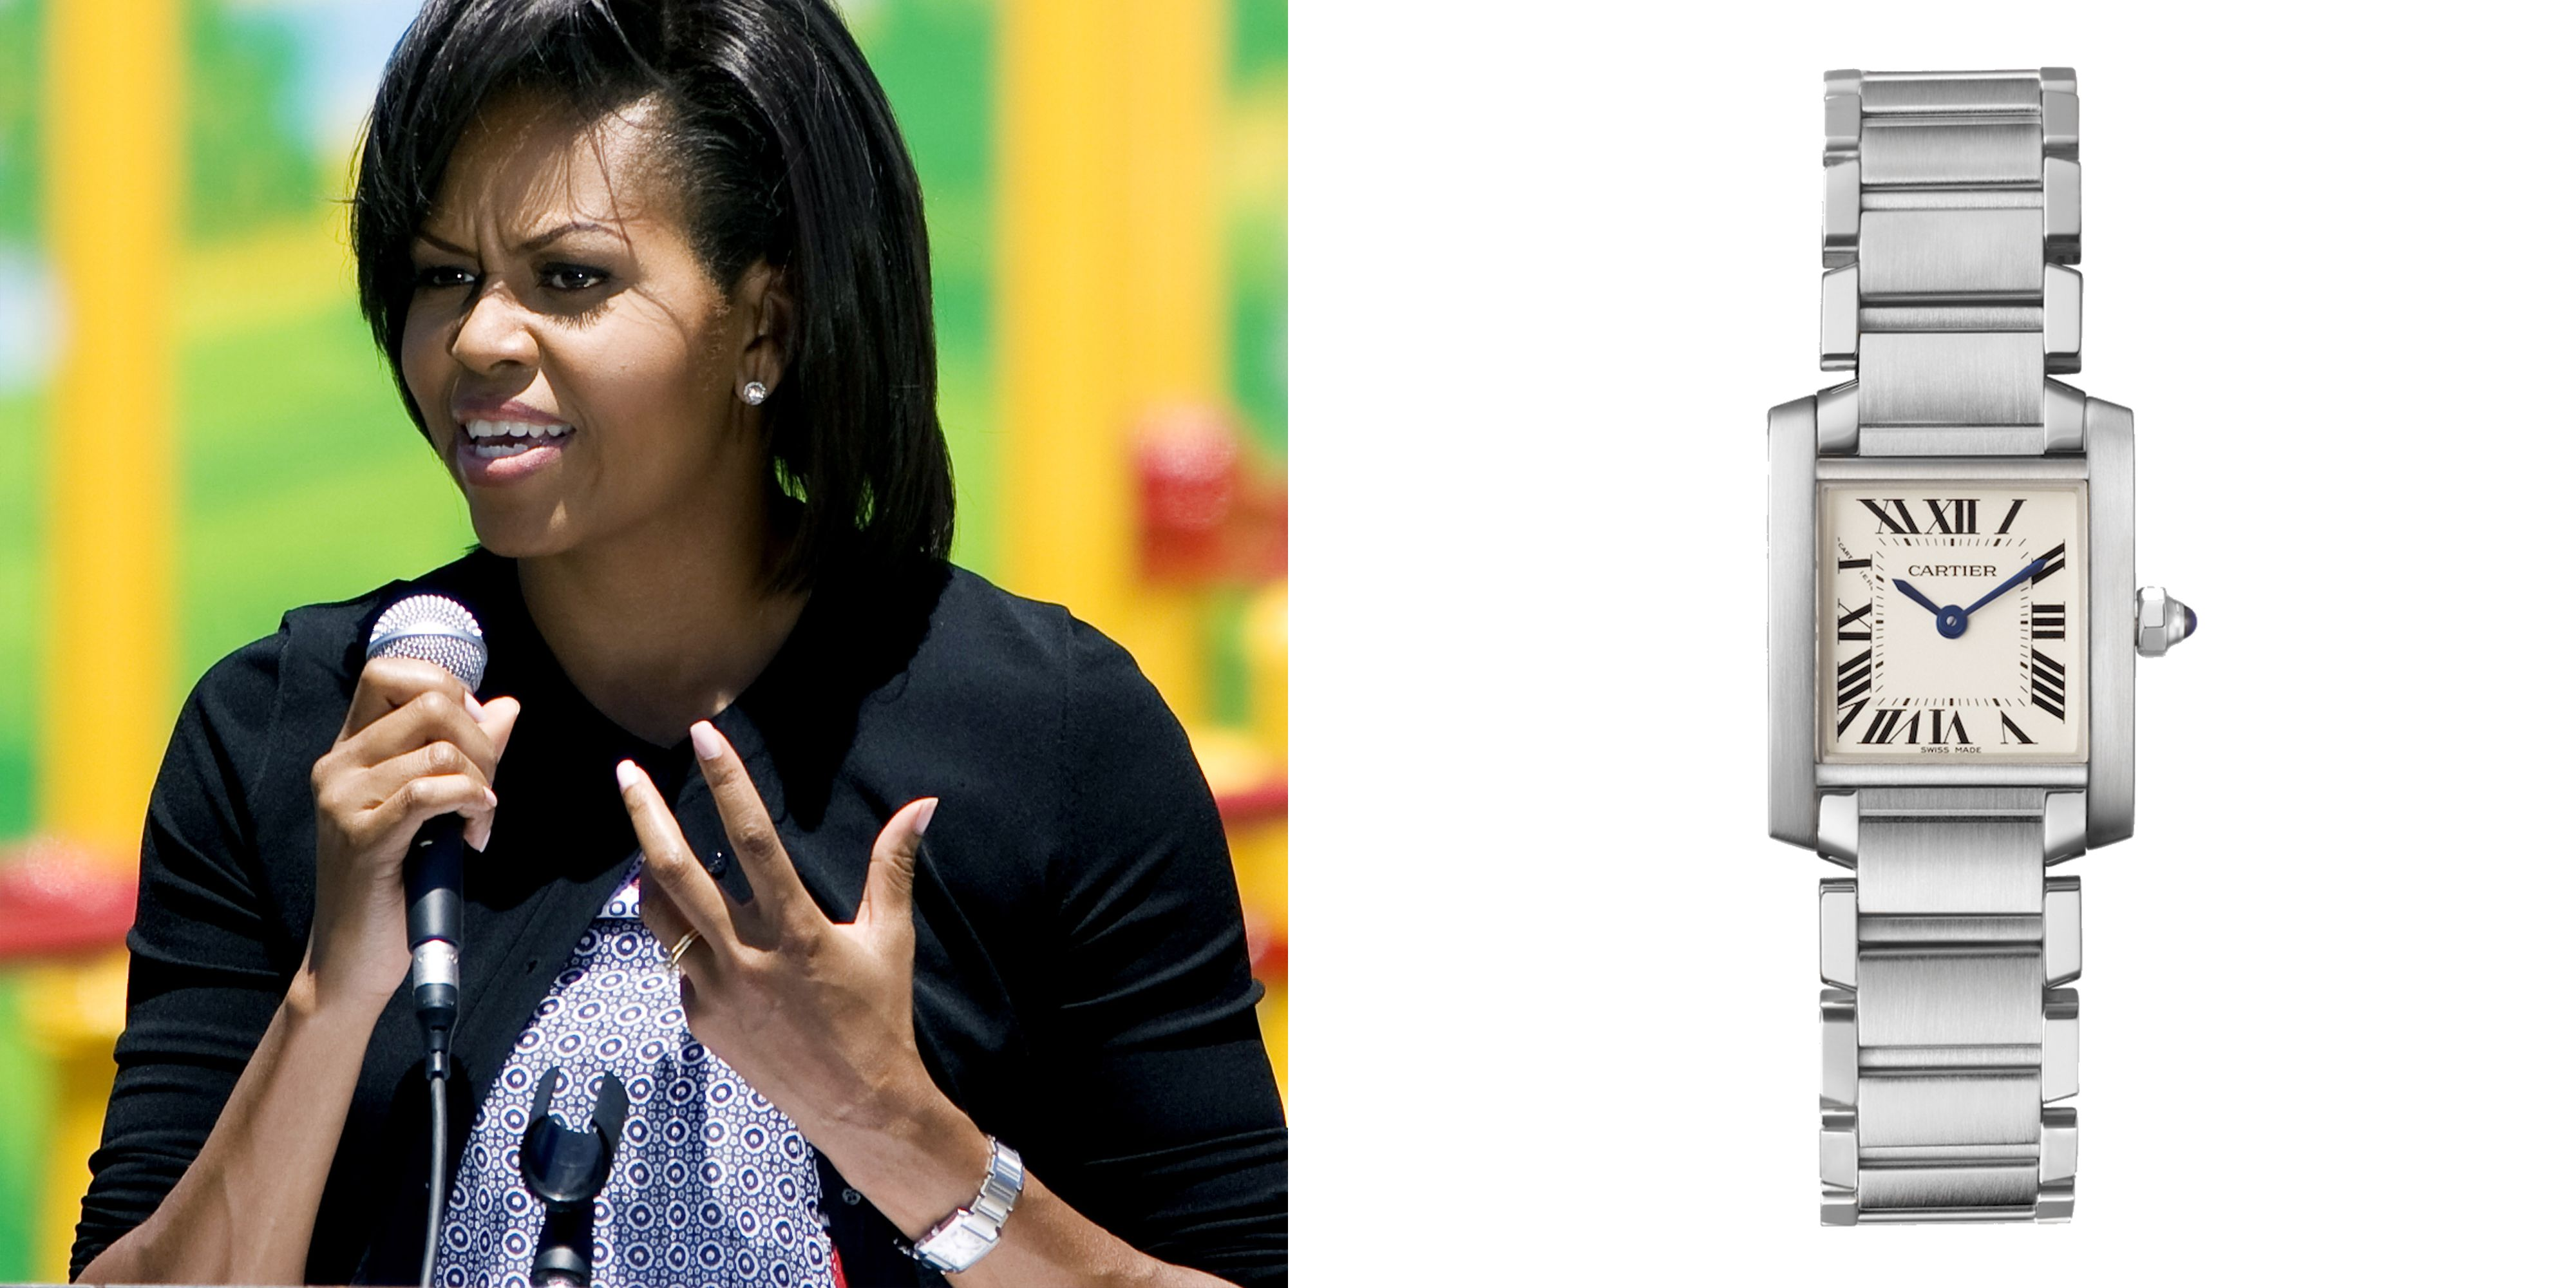 What celebrities 39 watches say about them cartier tank francaise cartier tank and cartier for Celebrity watches